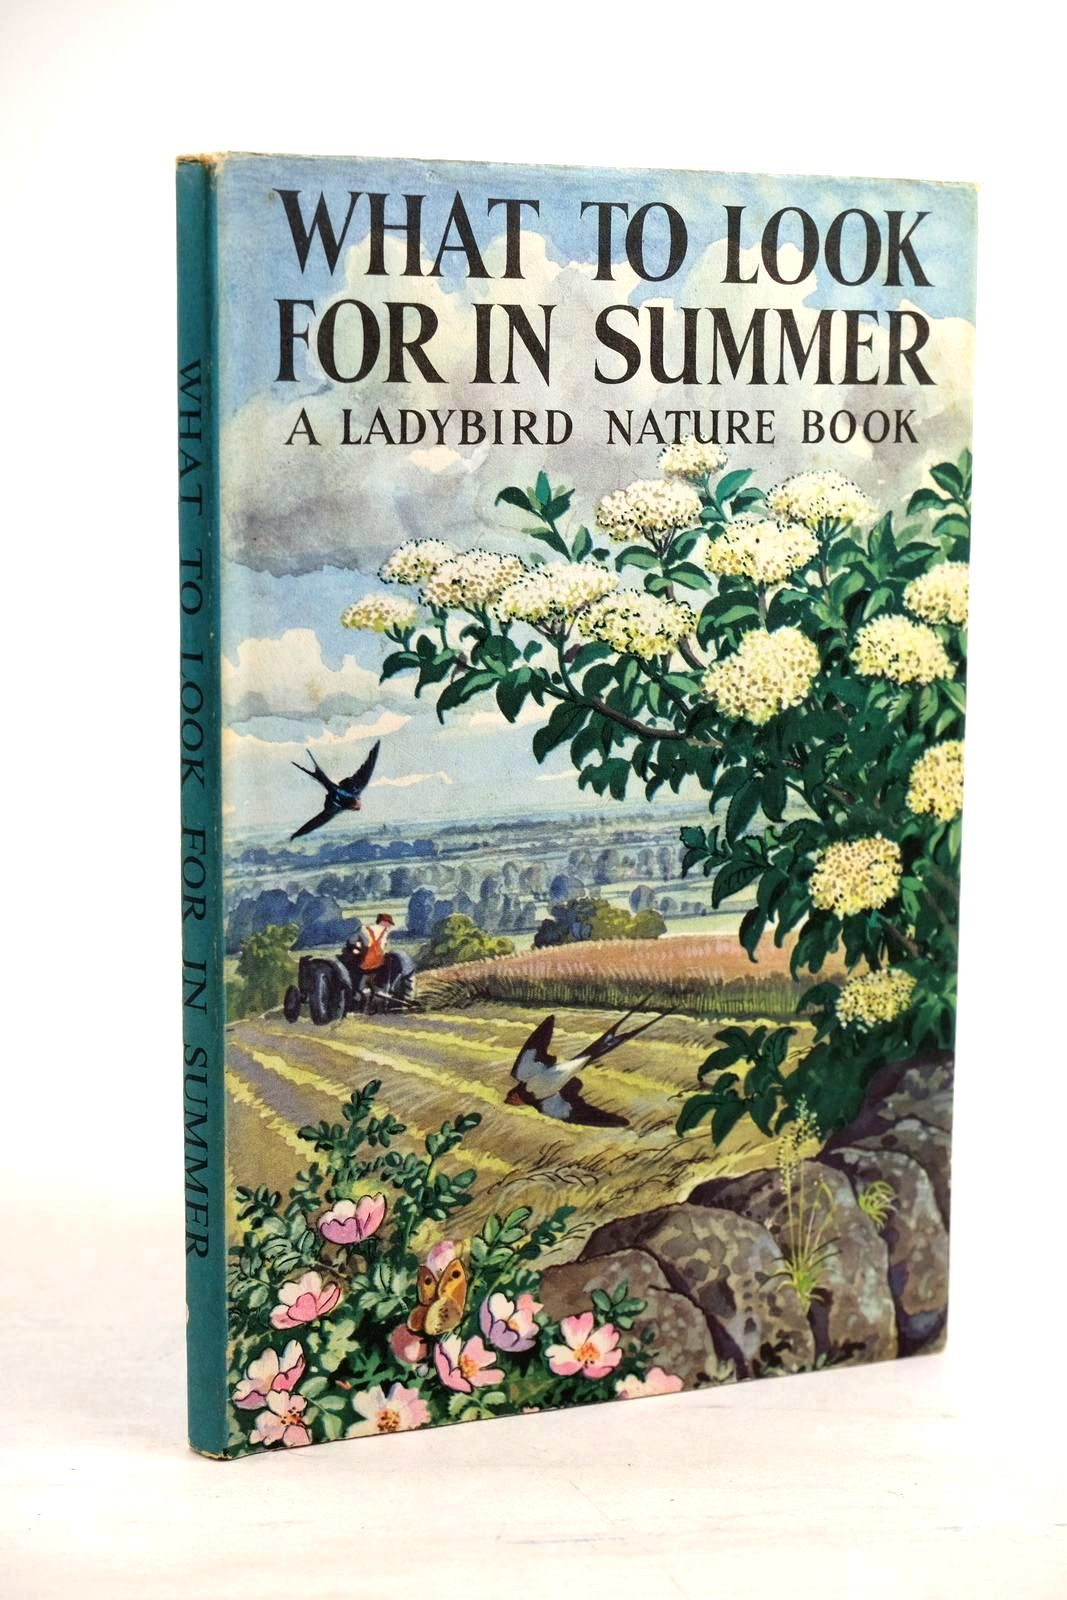 Photo of WHAT TO LOOK FOR IN SUMMER written by Watson, E.L. Grant illustrated by Tunnicliffe, C.F. published by Wills & Hepworth Ltd. (STOCK CODE: 1320636)  for sale by Stella & Rose's Books